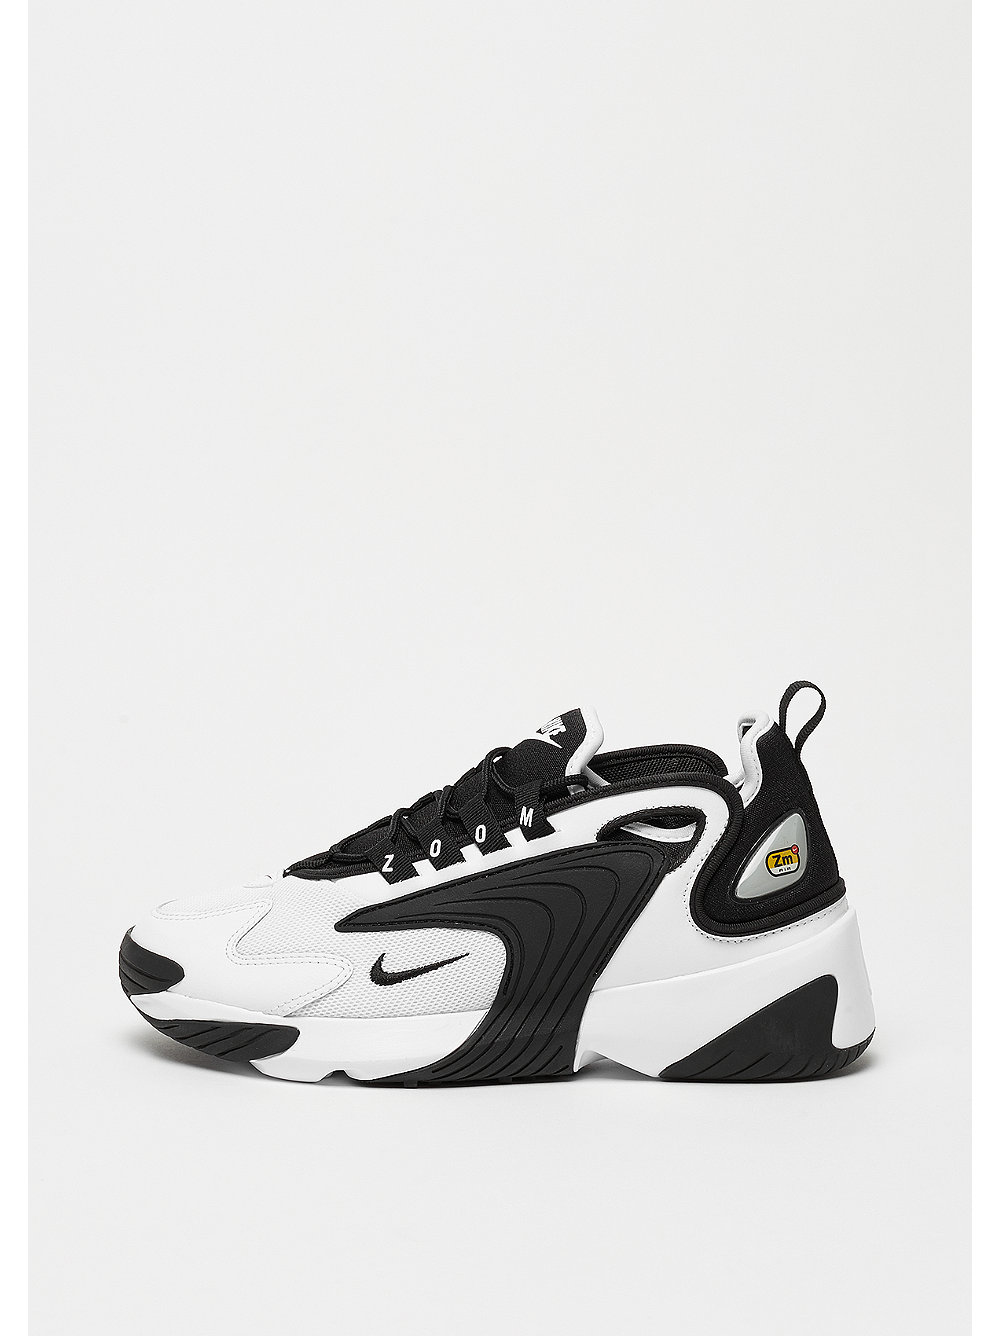 Nike Zoom 2K Black White On Sale